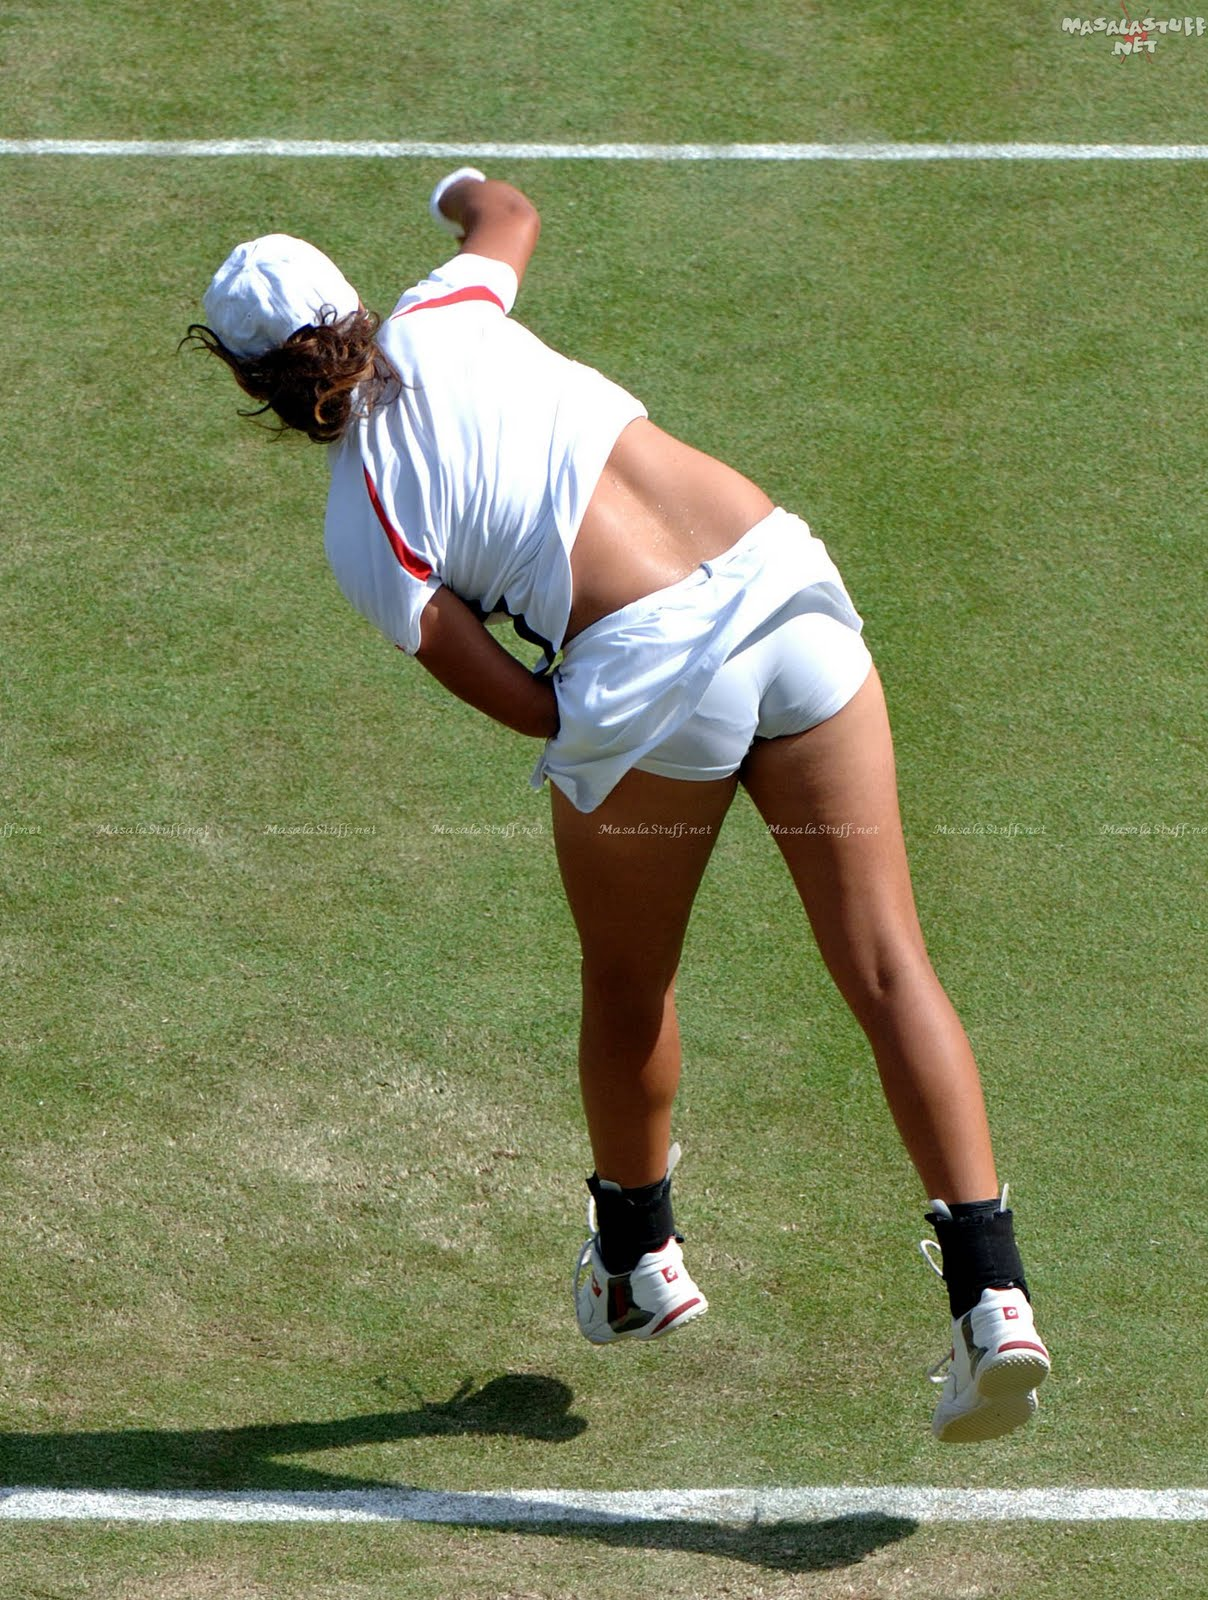 Sania Mirza Nude Images